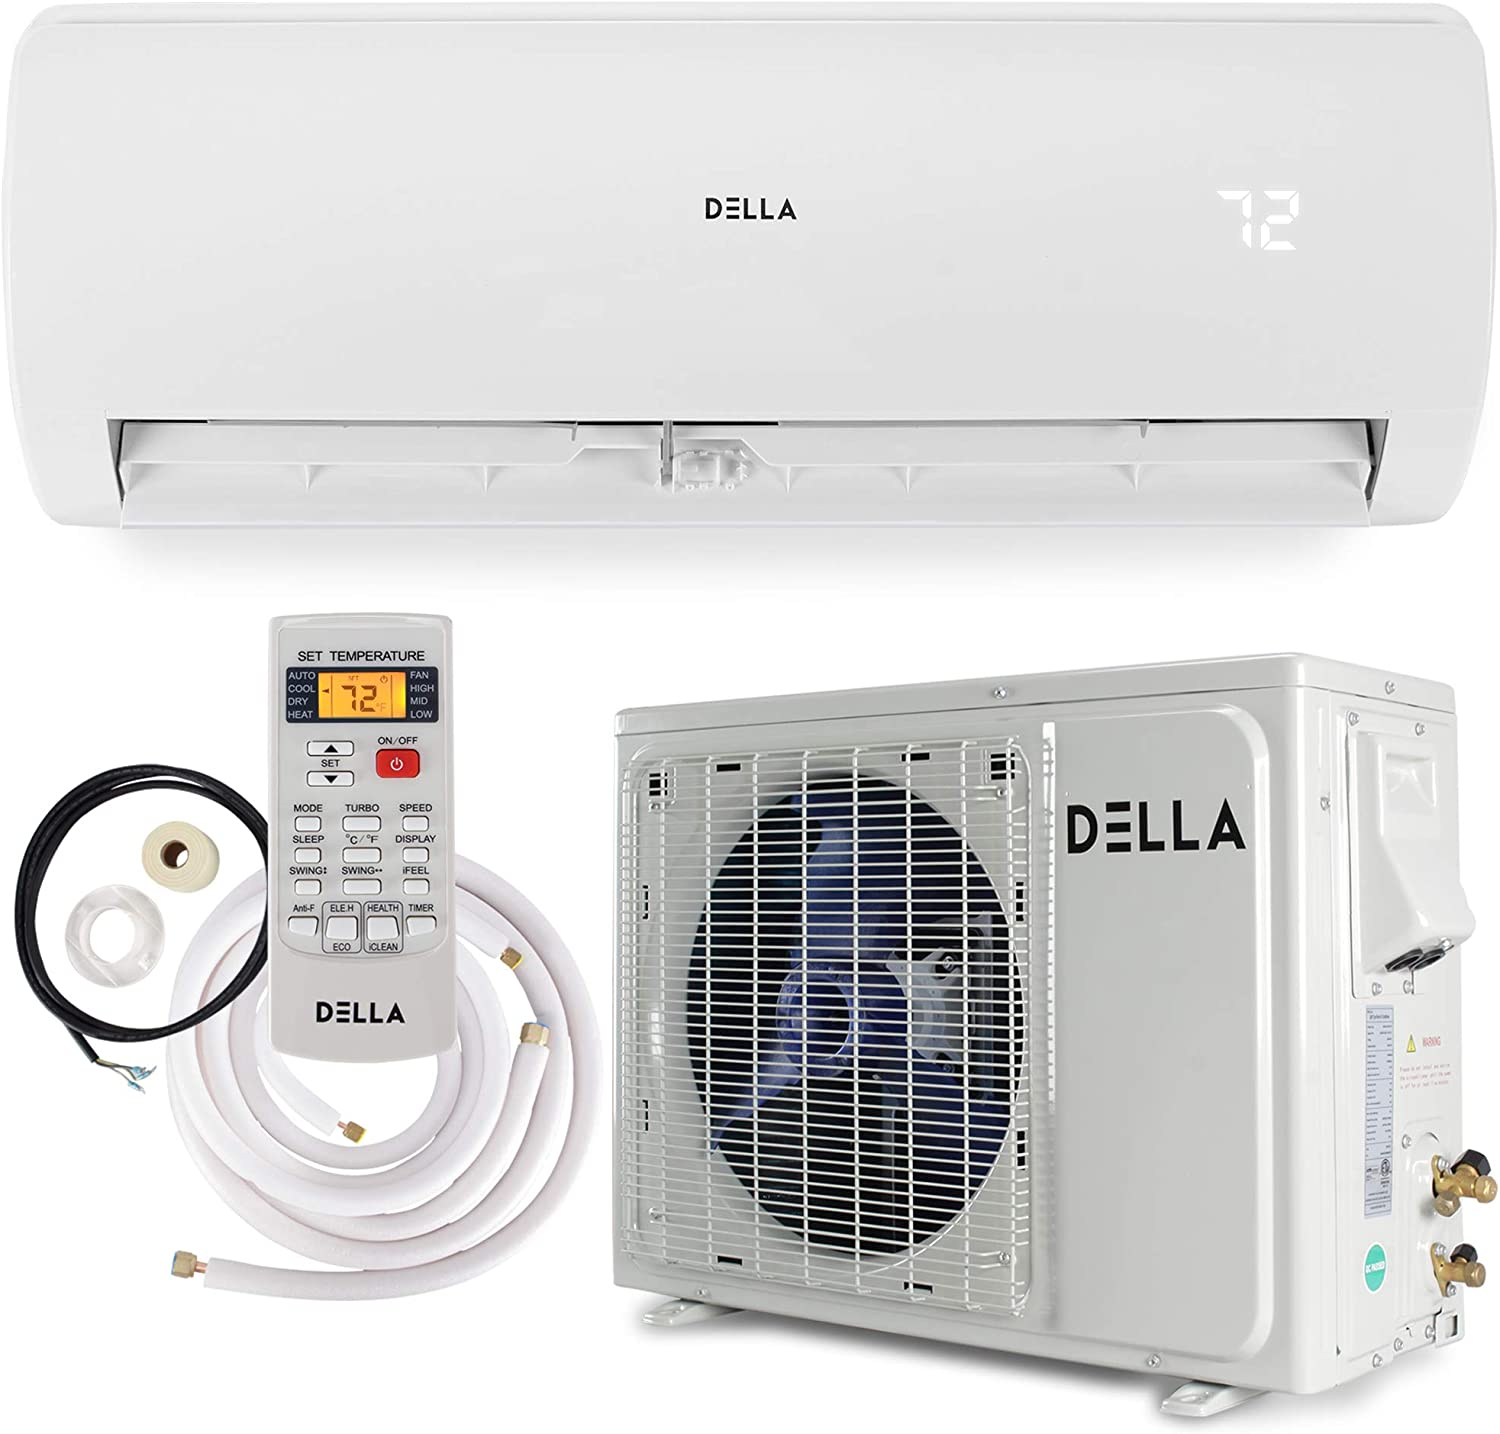 Della 12000 BTU Mini Split Air Conditioner Ductless Inverter System 17 SEER 115V with 1 Ton Heat Pump, Pre-Charged Condenser and Full Installation Accessories Kit AHRI